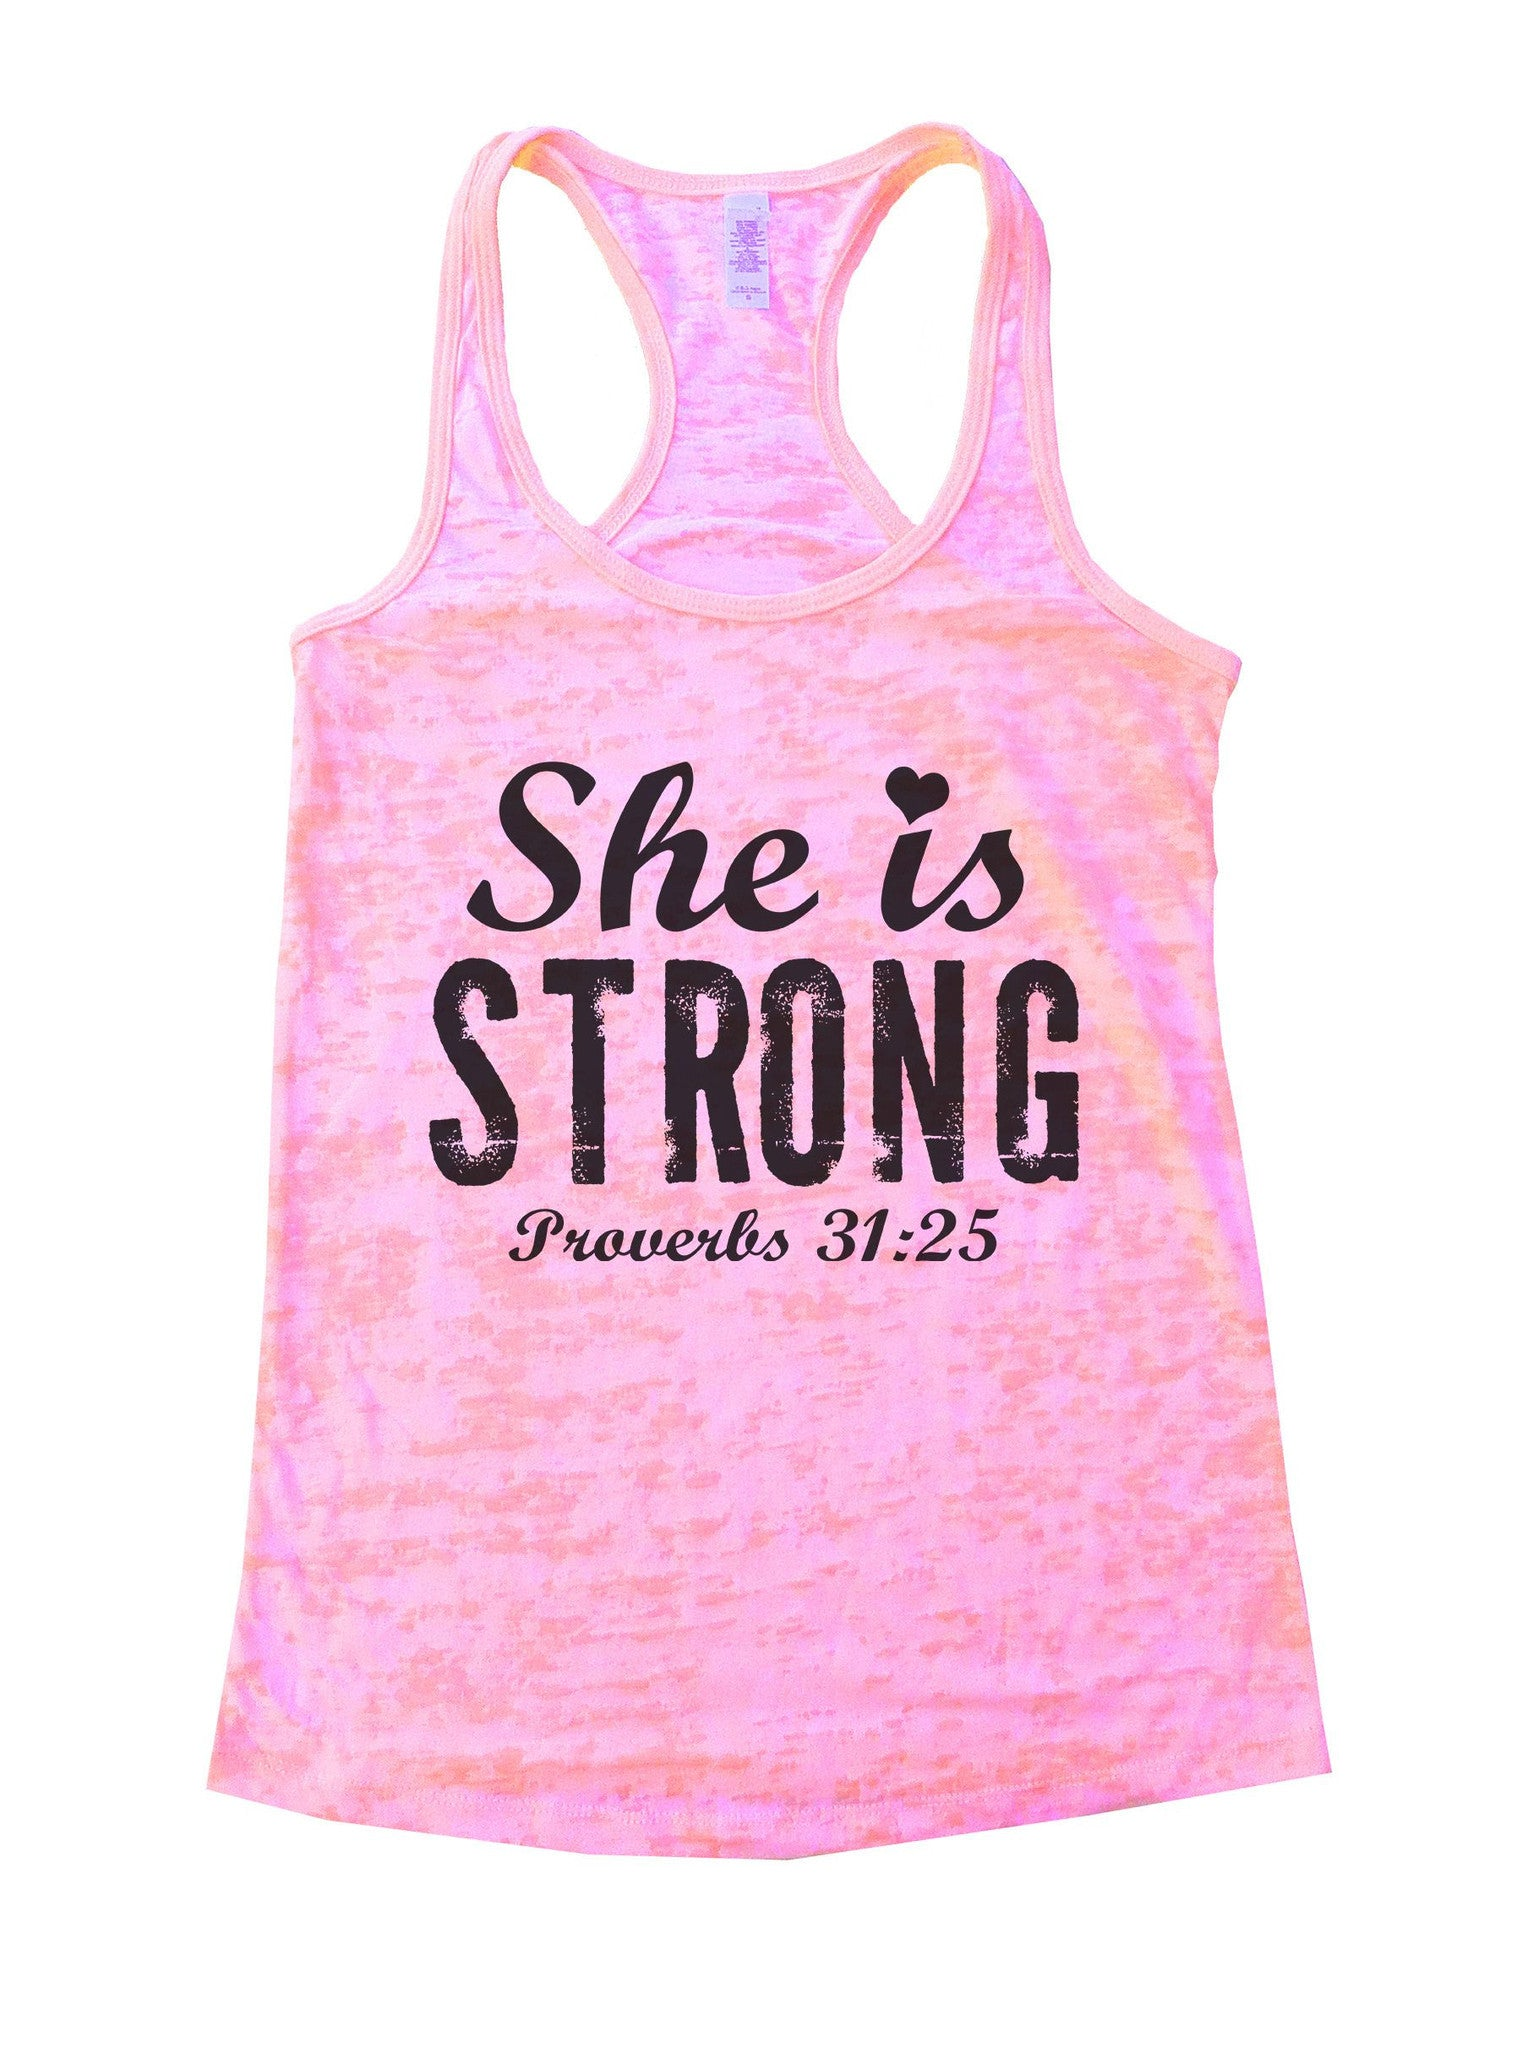 She Is Strong Proverbs 31:25 Burnout Tank Top By BurnoutTankTops.com - 939 - Funny Shirts Tank Tops Burnouts and Triblends  - 2